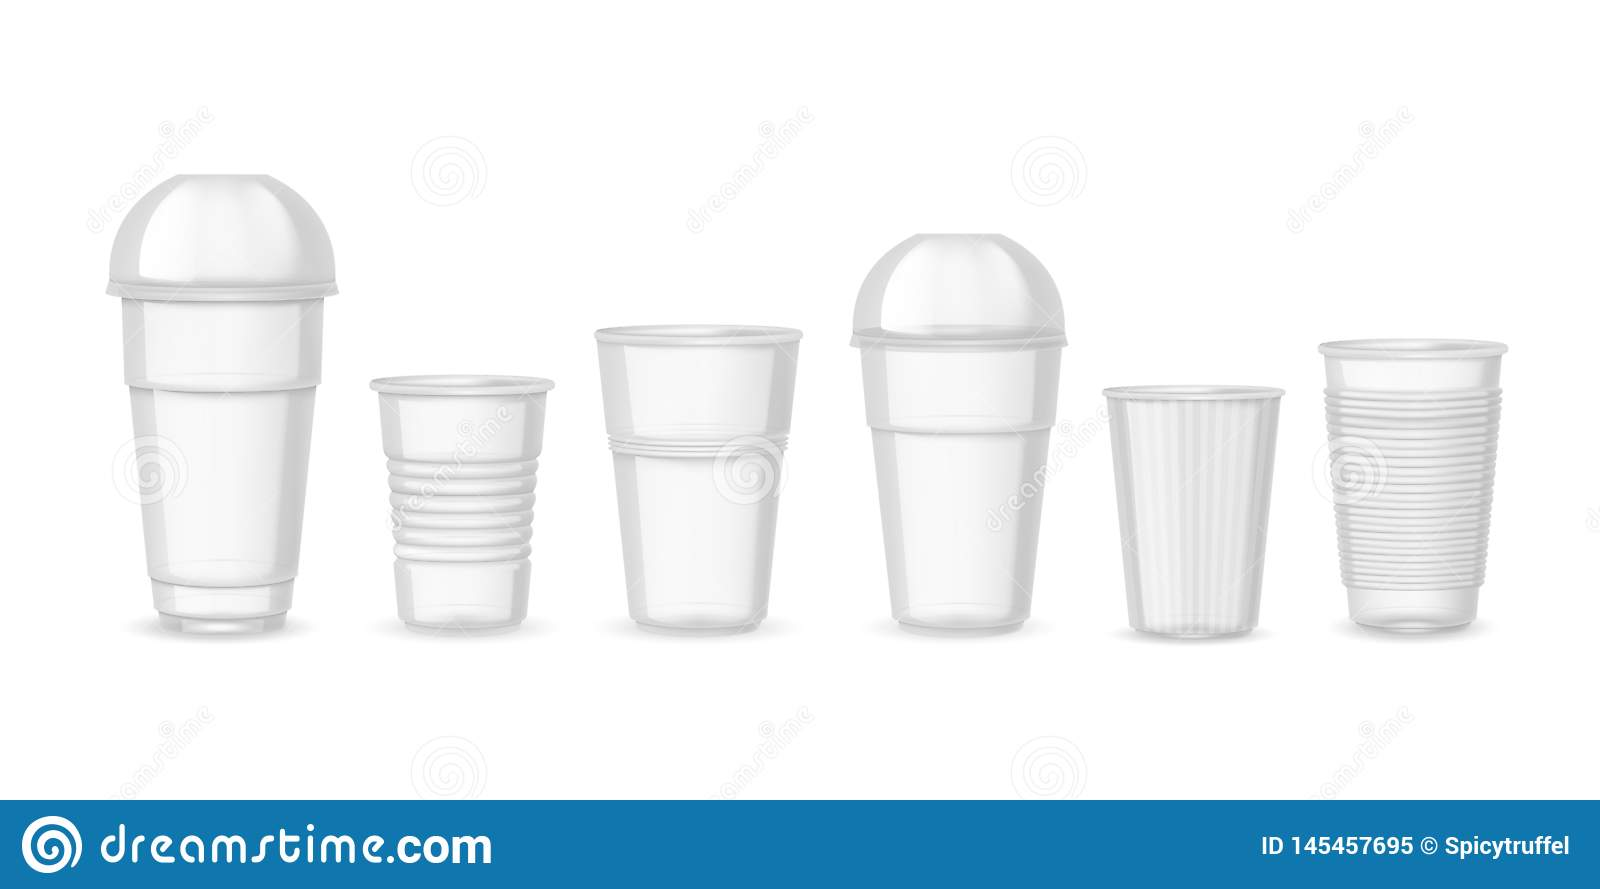 Plastic cups. Realistic transparent coffee juice and beverage containers mockup. Vector design templates isolated on